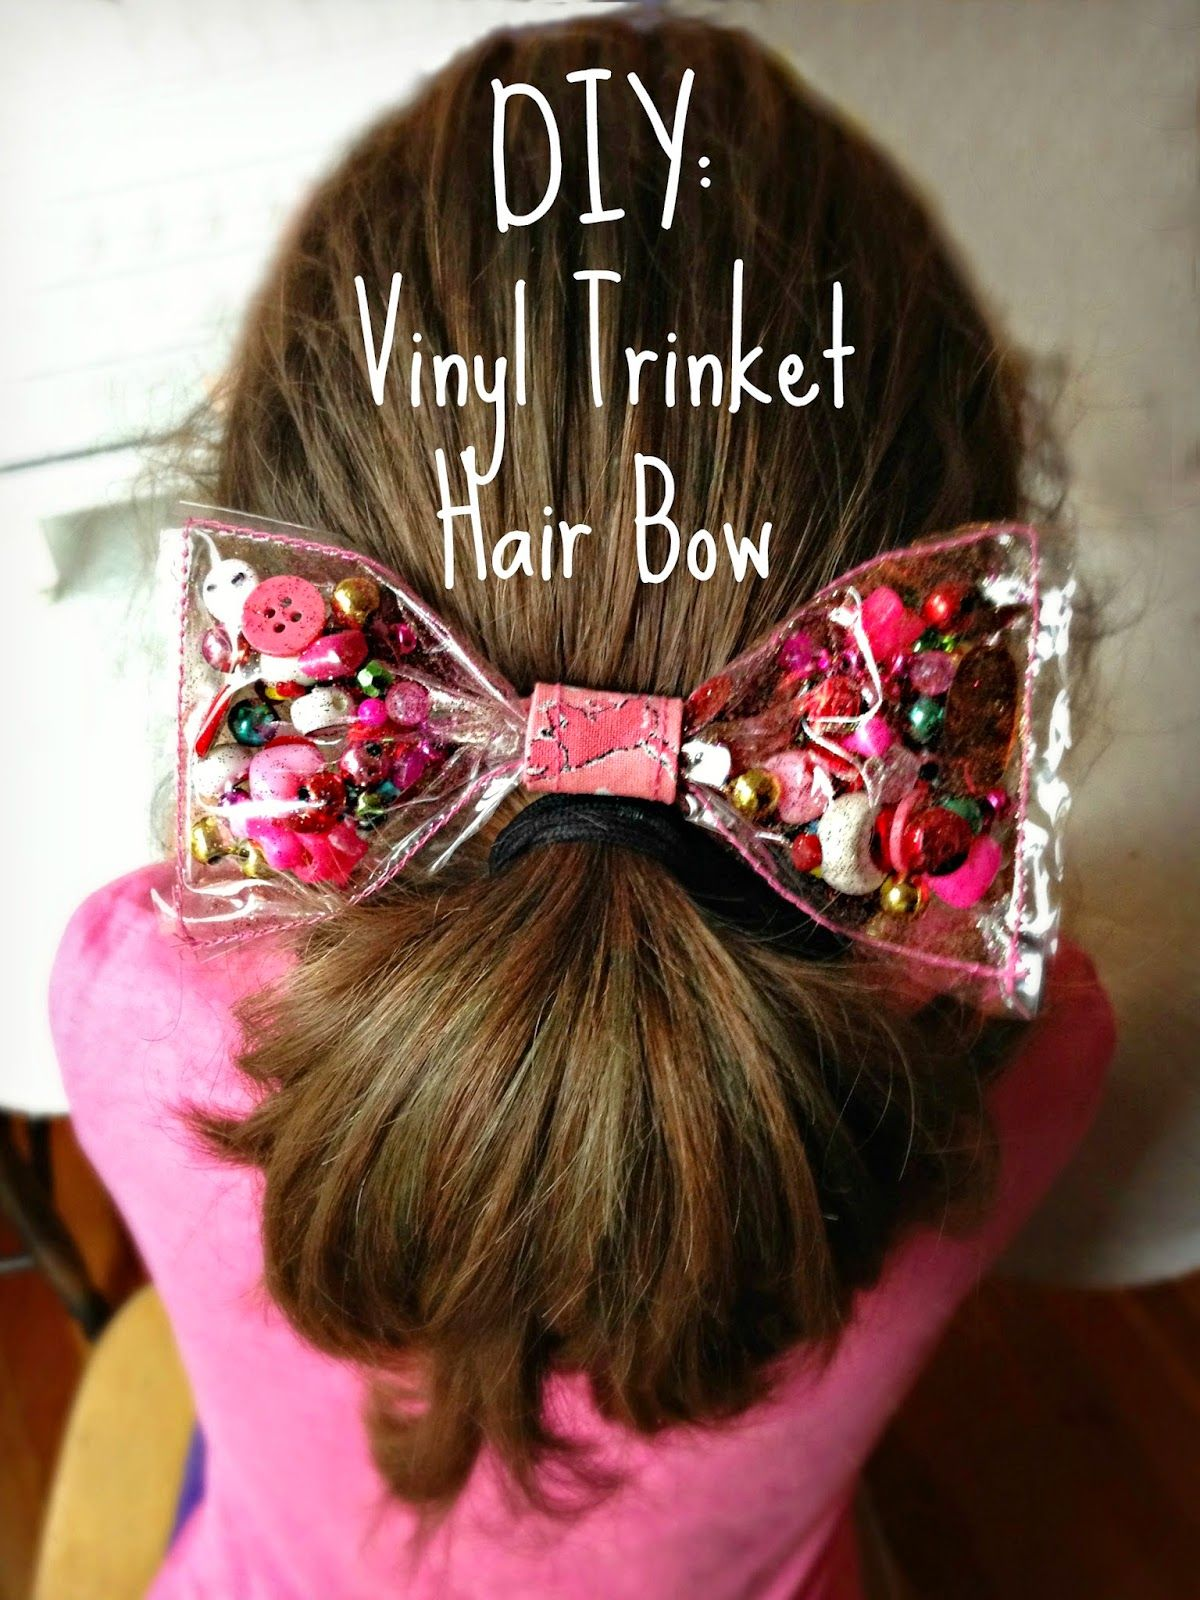 Whimsy Love Diy Vinyl Trinket Hair Bow Tulle Hair Bows